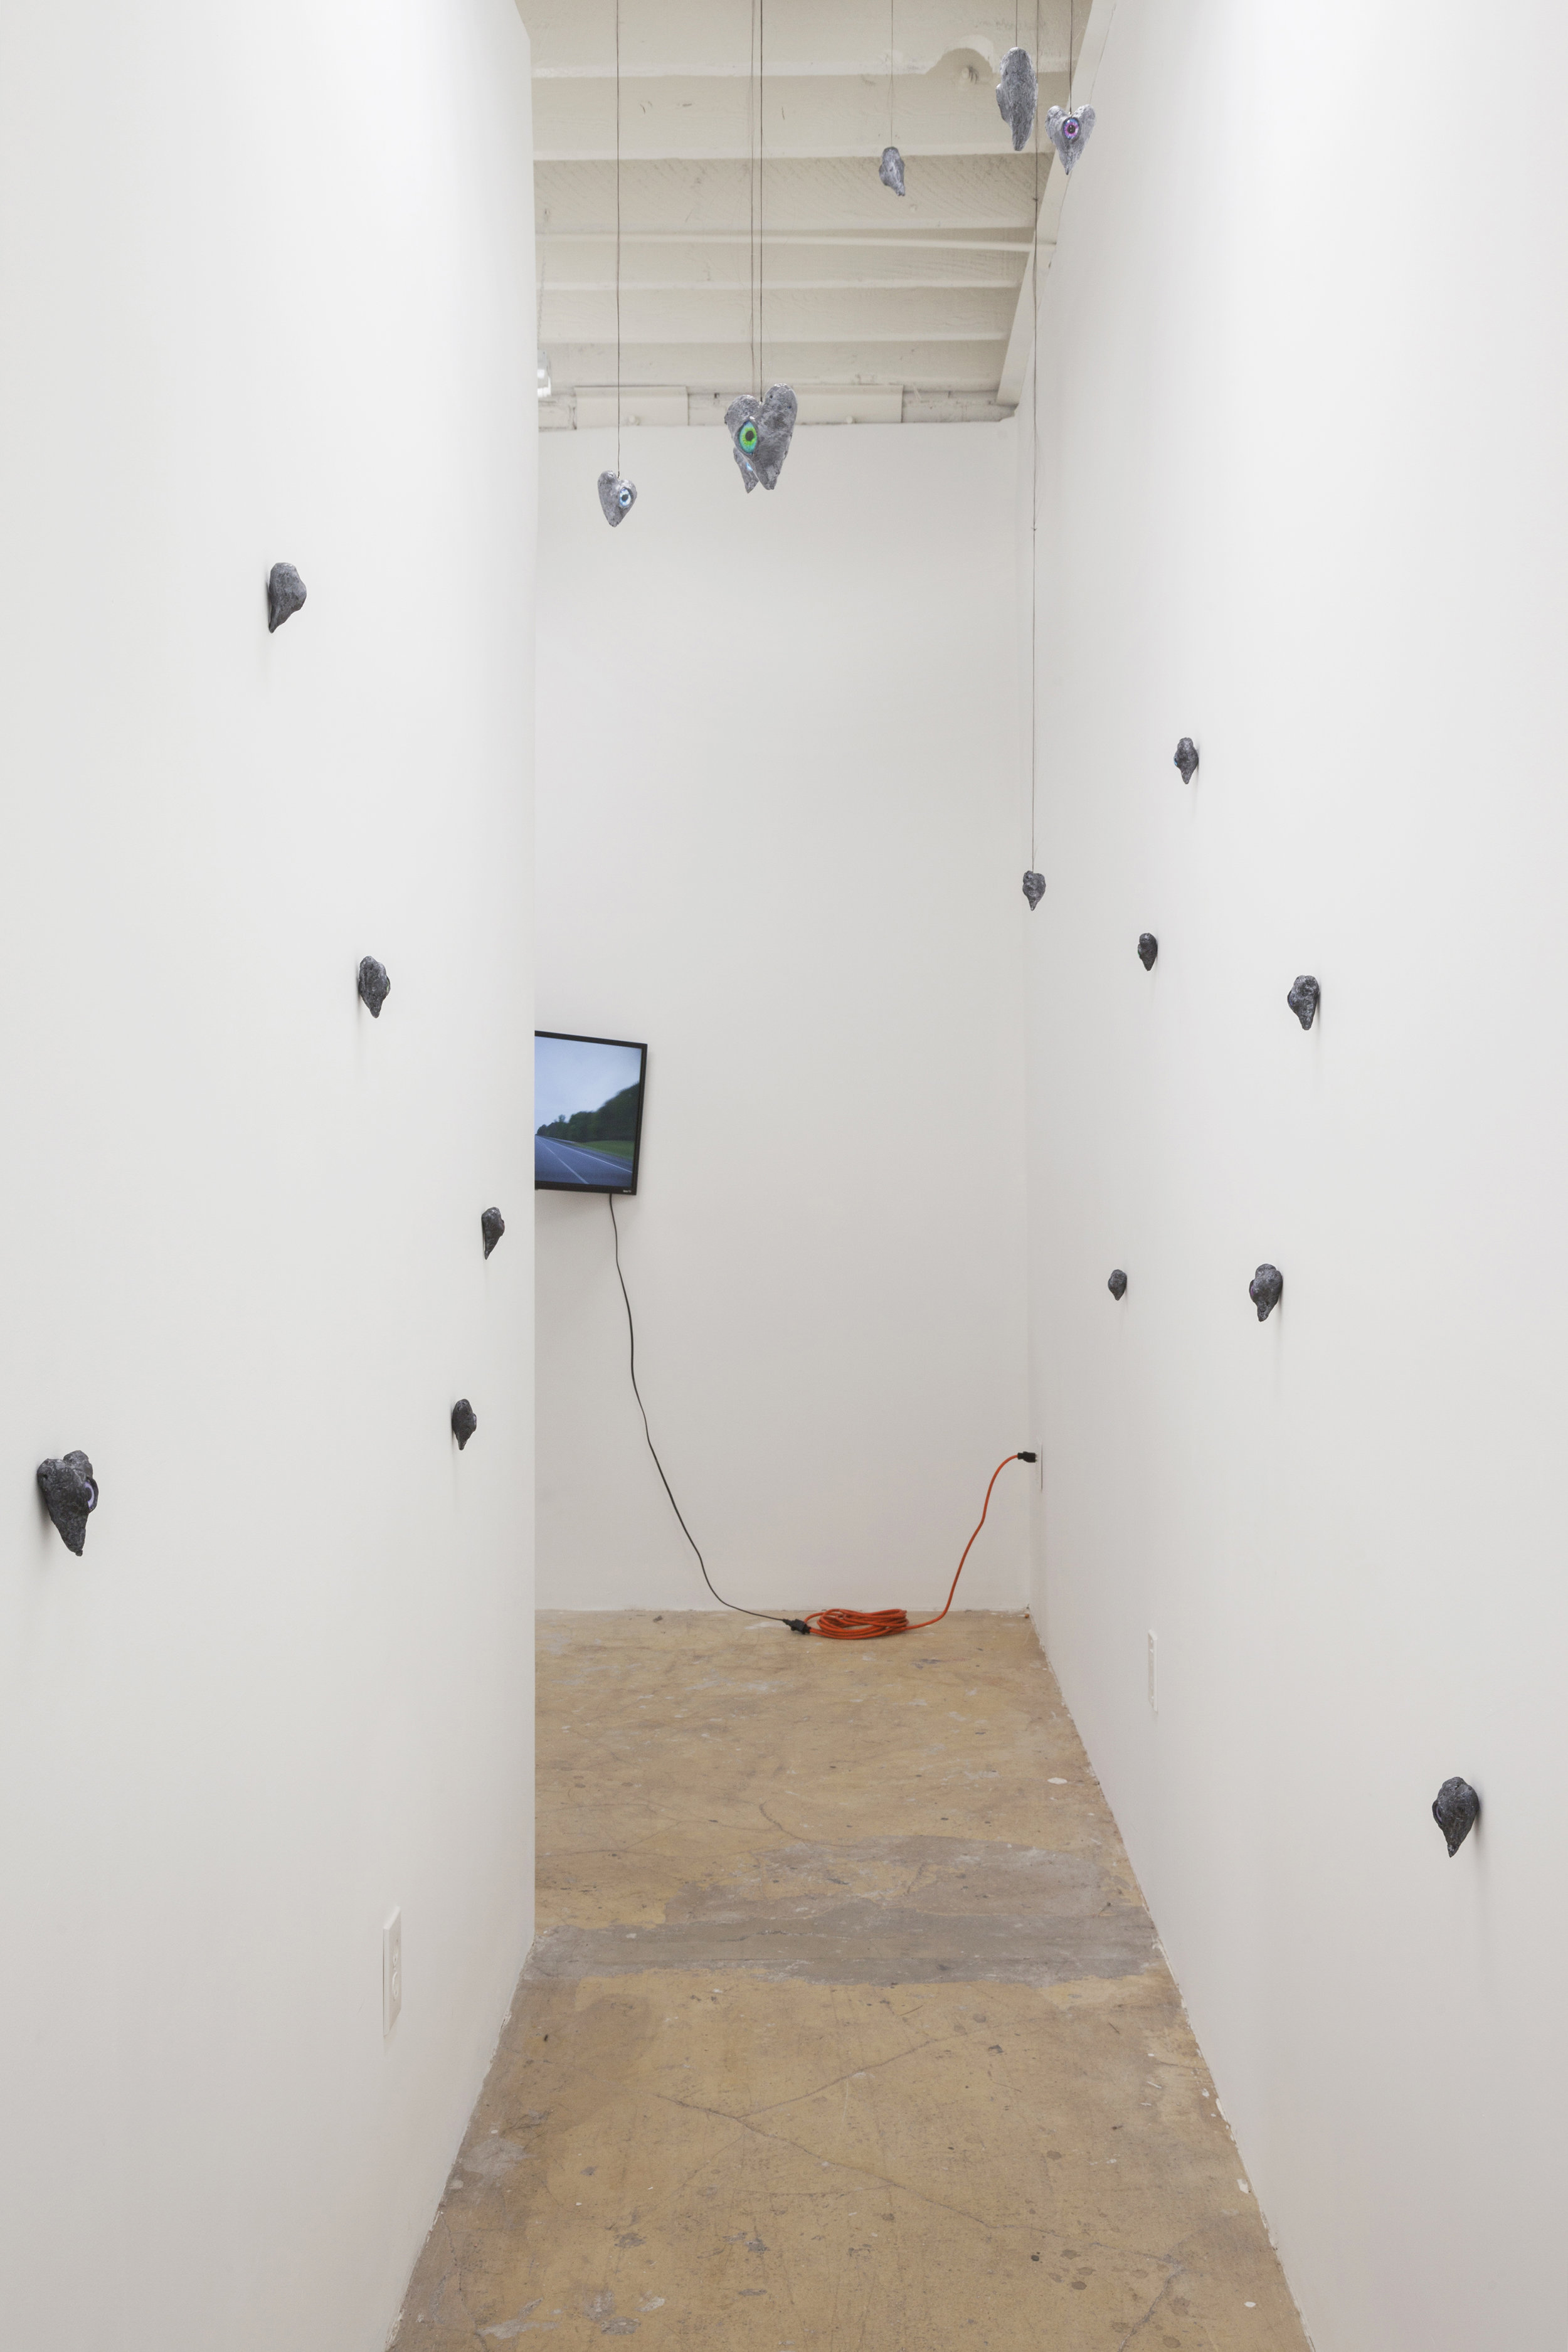 Installation View of  DEATH DRIVE JOY RIDE,  June 9th through August 8th, 2018.